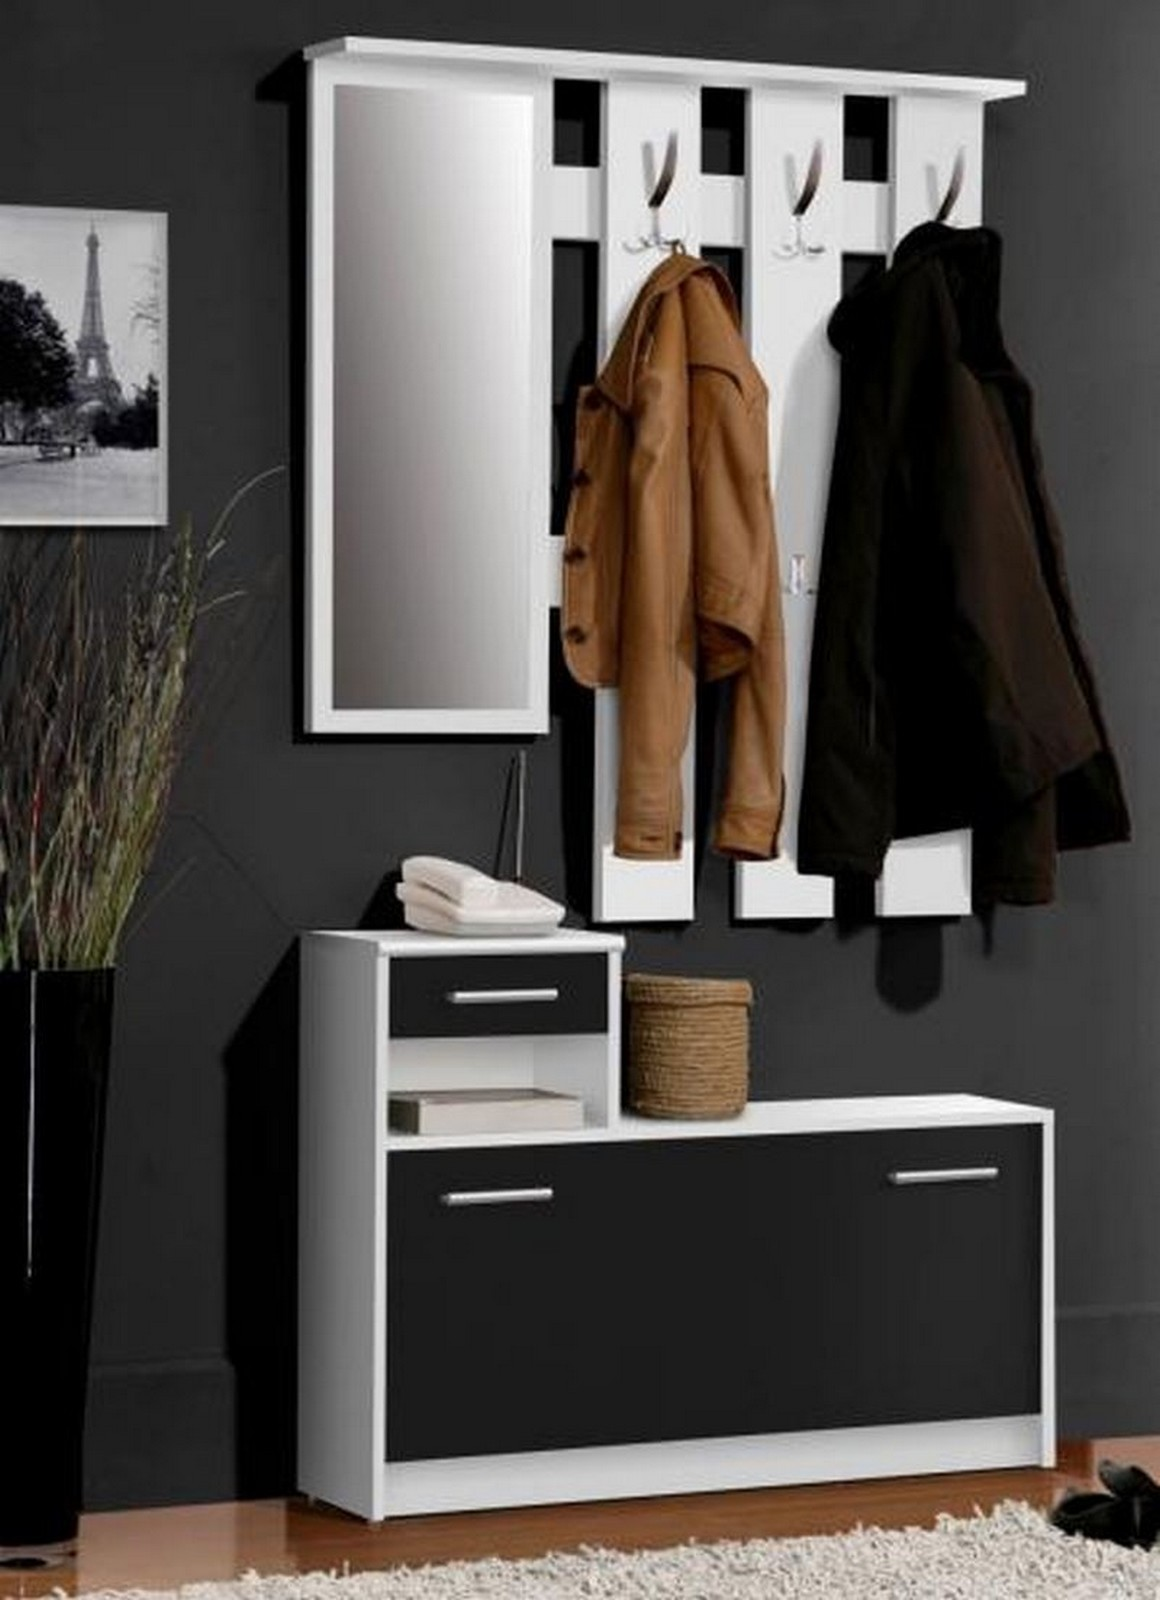 flurgarderobe m bel einebinsenweisheit. Black Bedroom Furniture Sets. Home Design Ideas